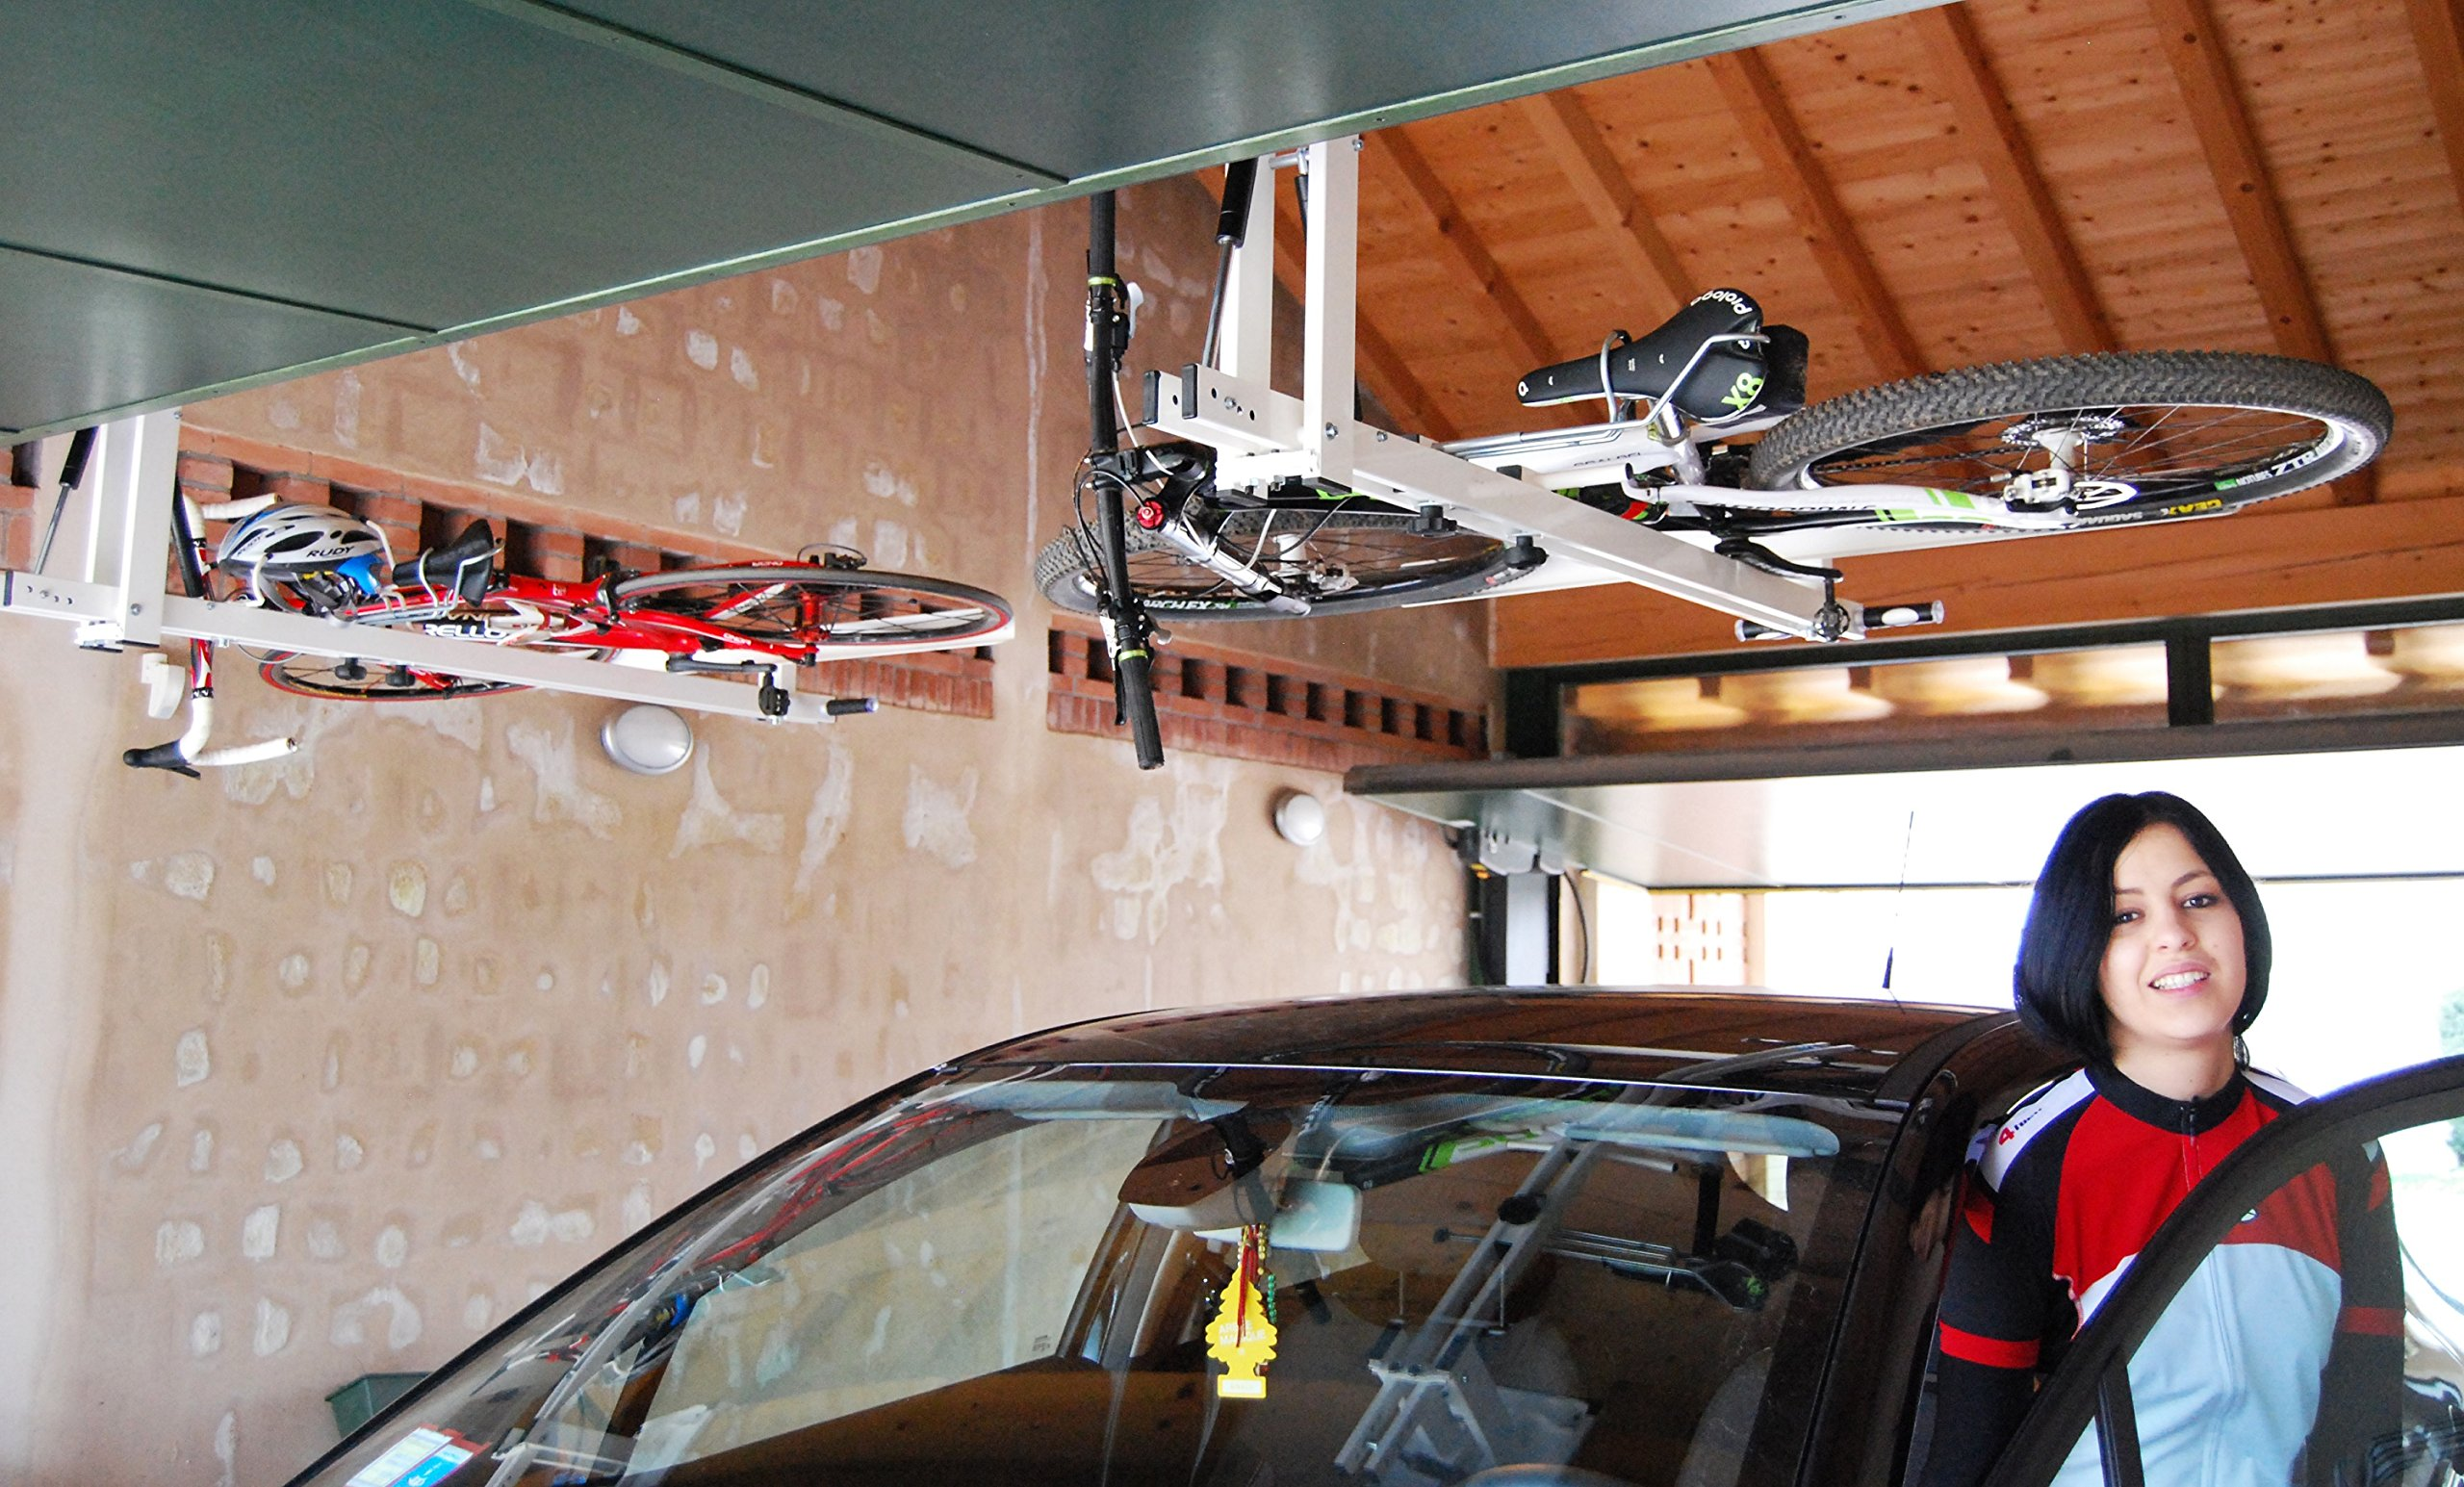 flat-bike-lift - The new overhead rack to store the bikes flat to the garage ceiling